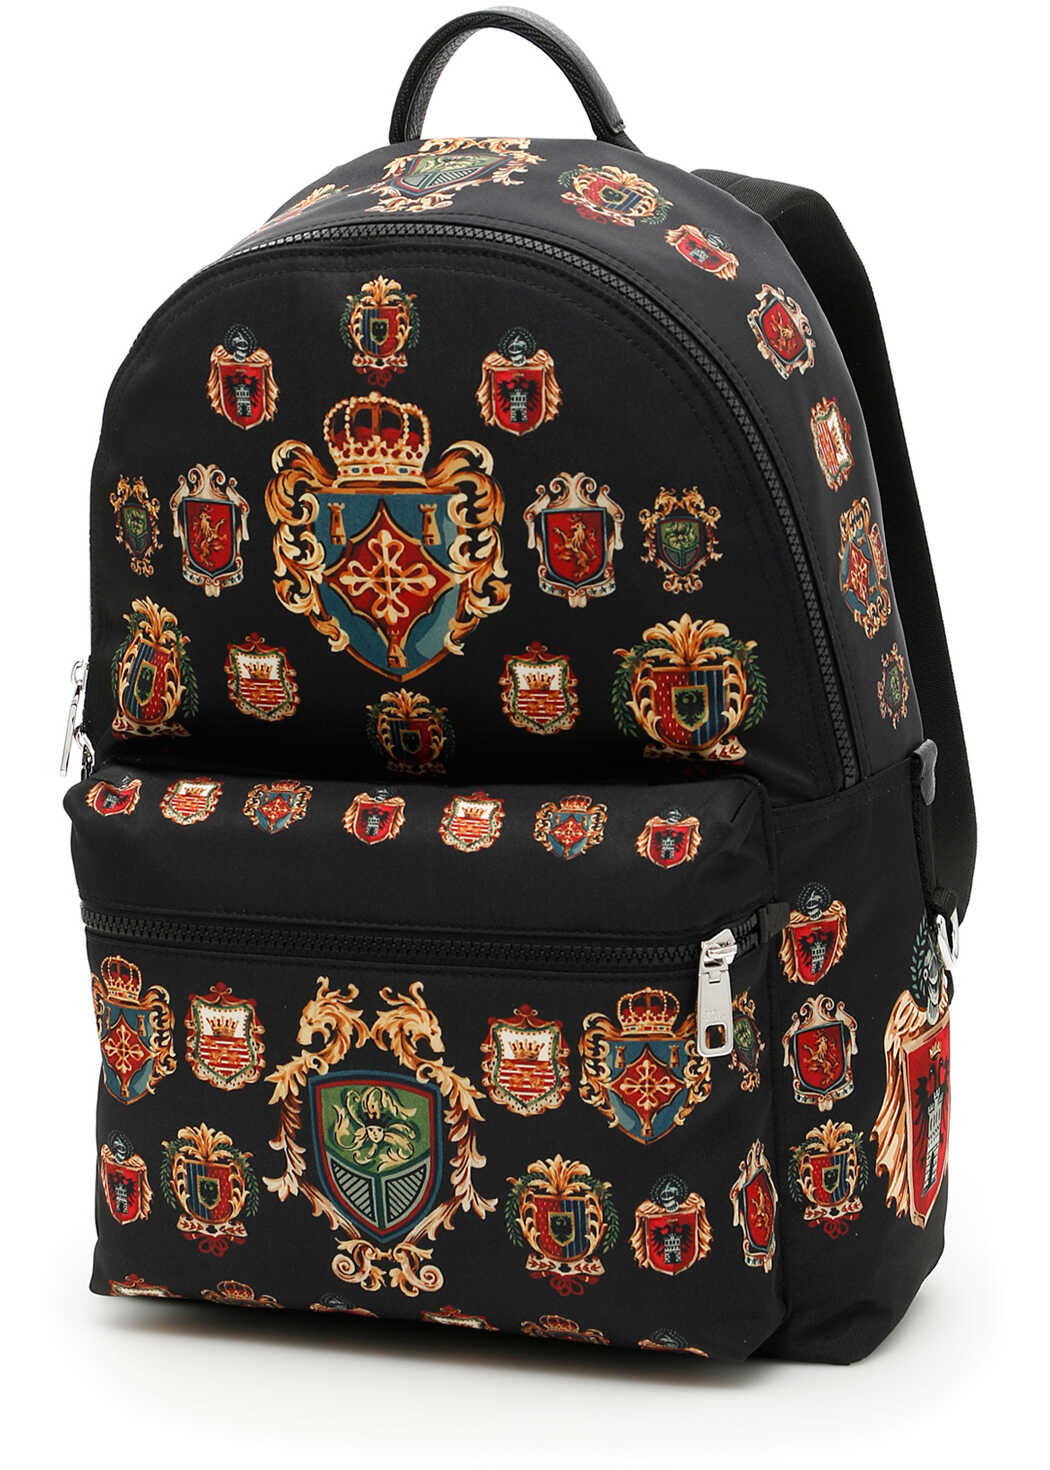 Dolce & Gabbana Badge Print Nylon Backpack STEMMI F.DO NERO